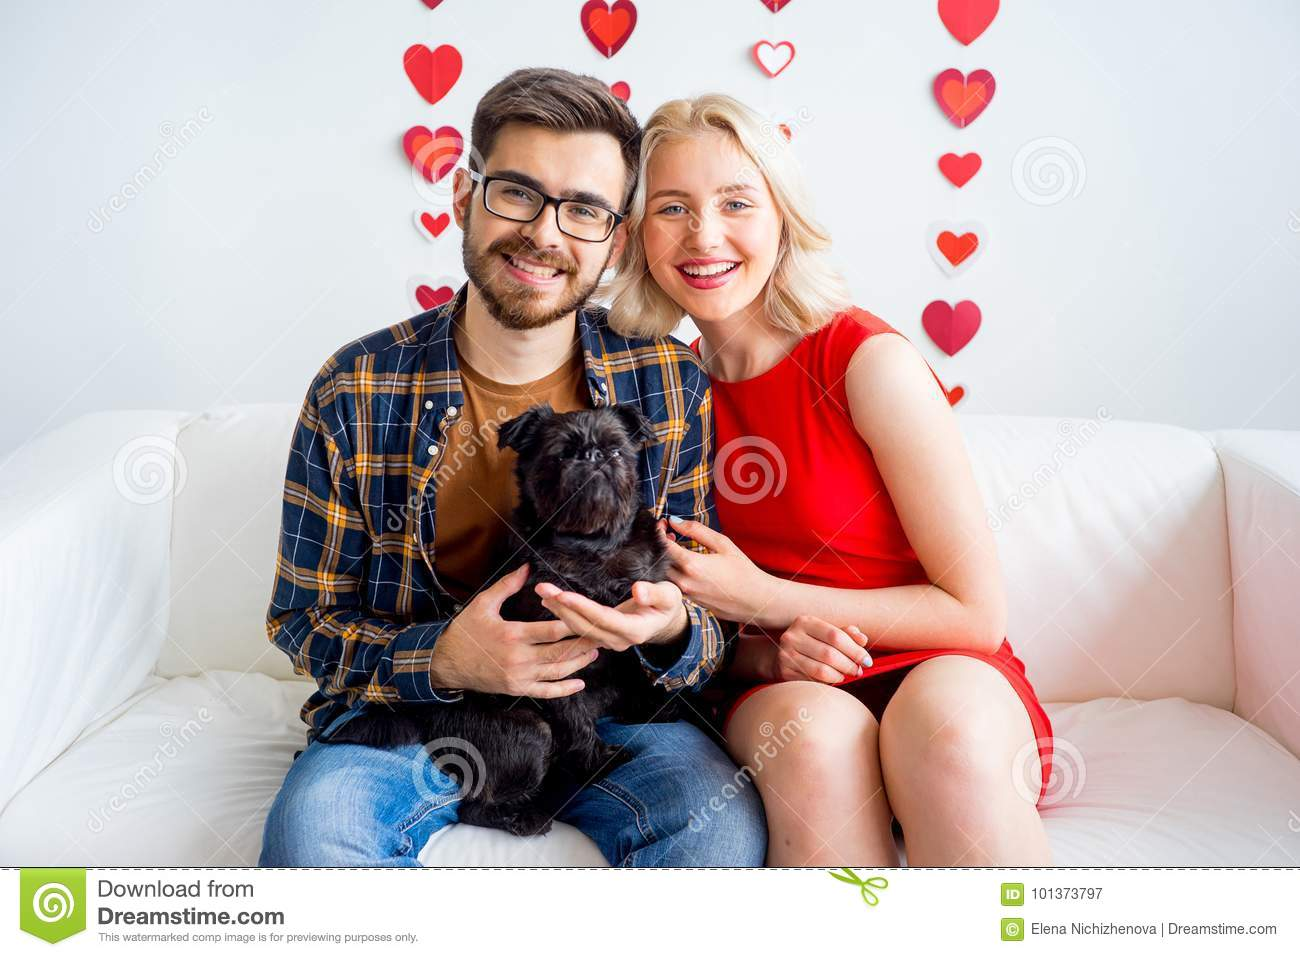 Valentine day with a dog